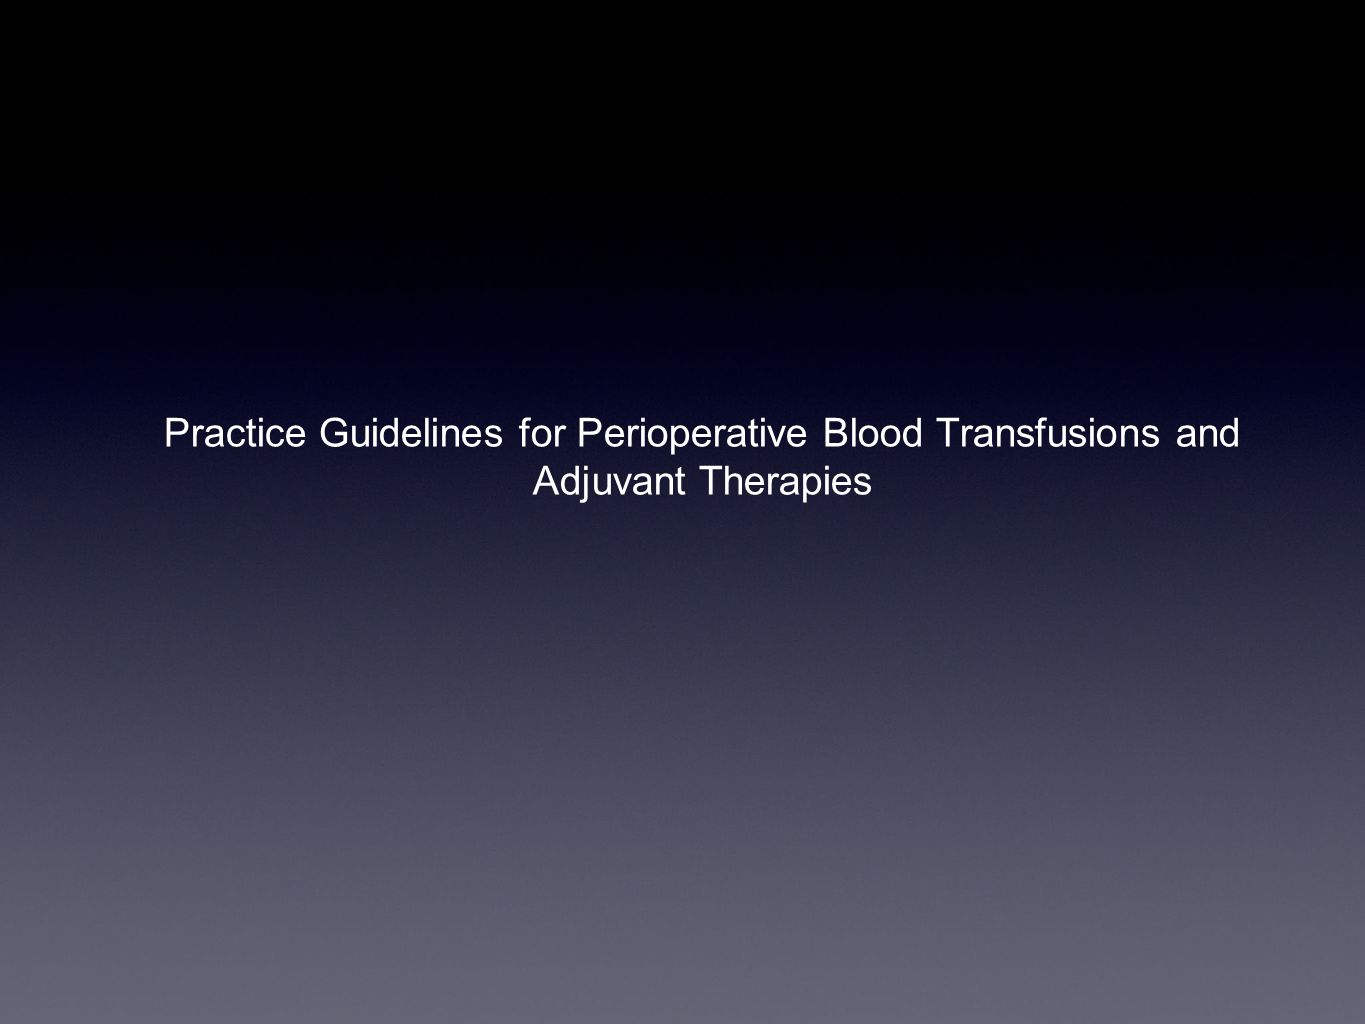 Practice Guidelines for Perioperative Blood Transfusions and Adjuvant Therapies